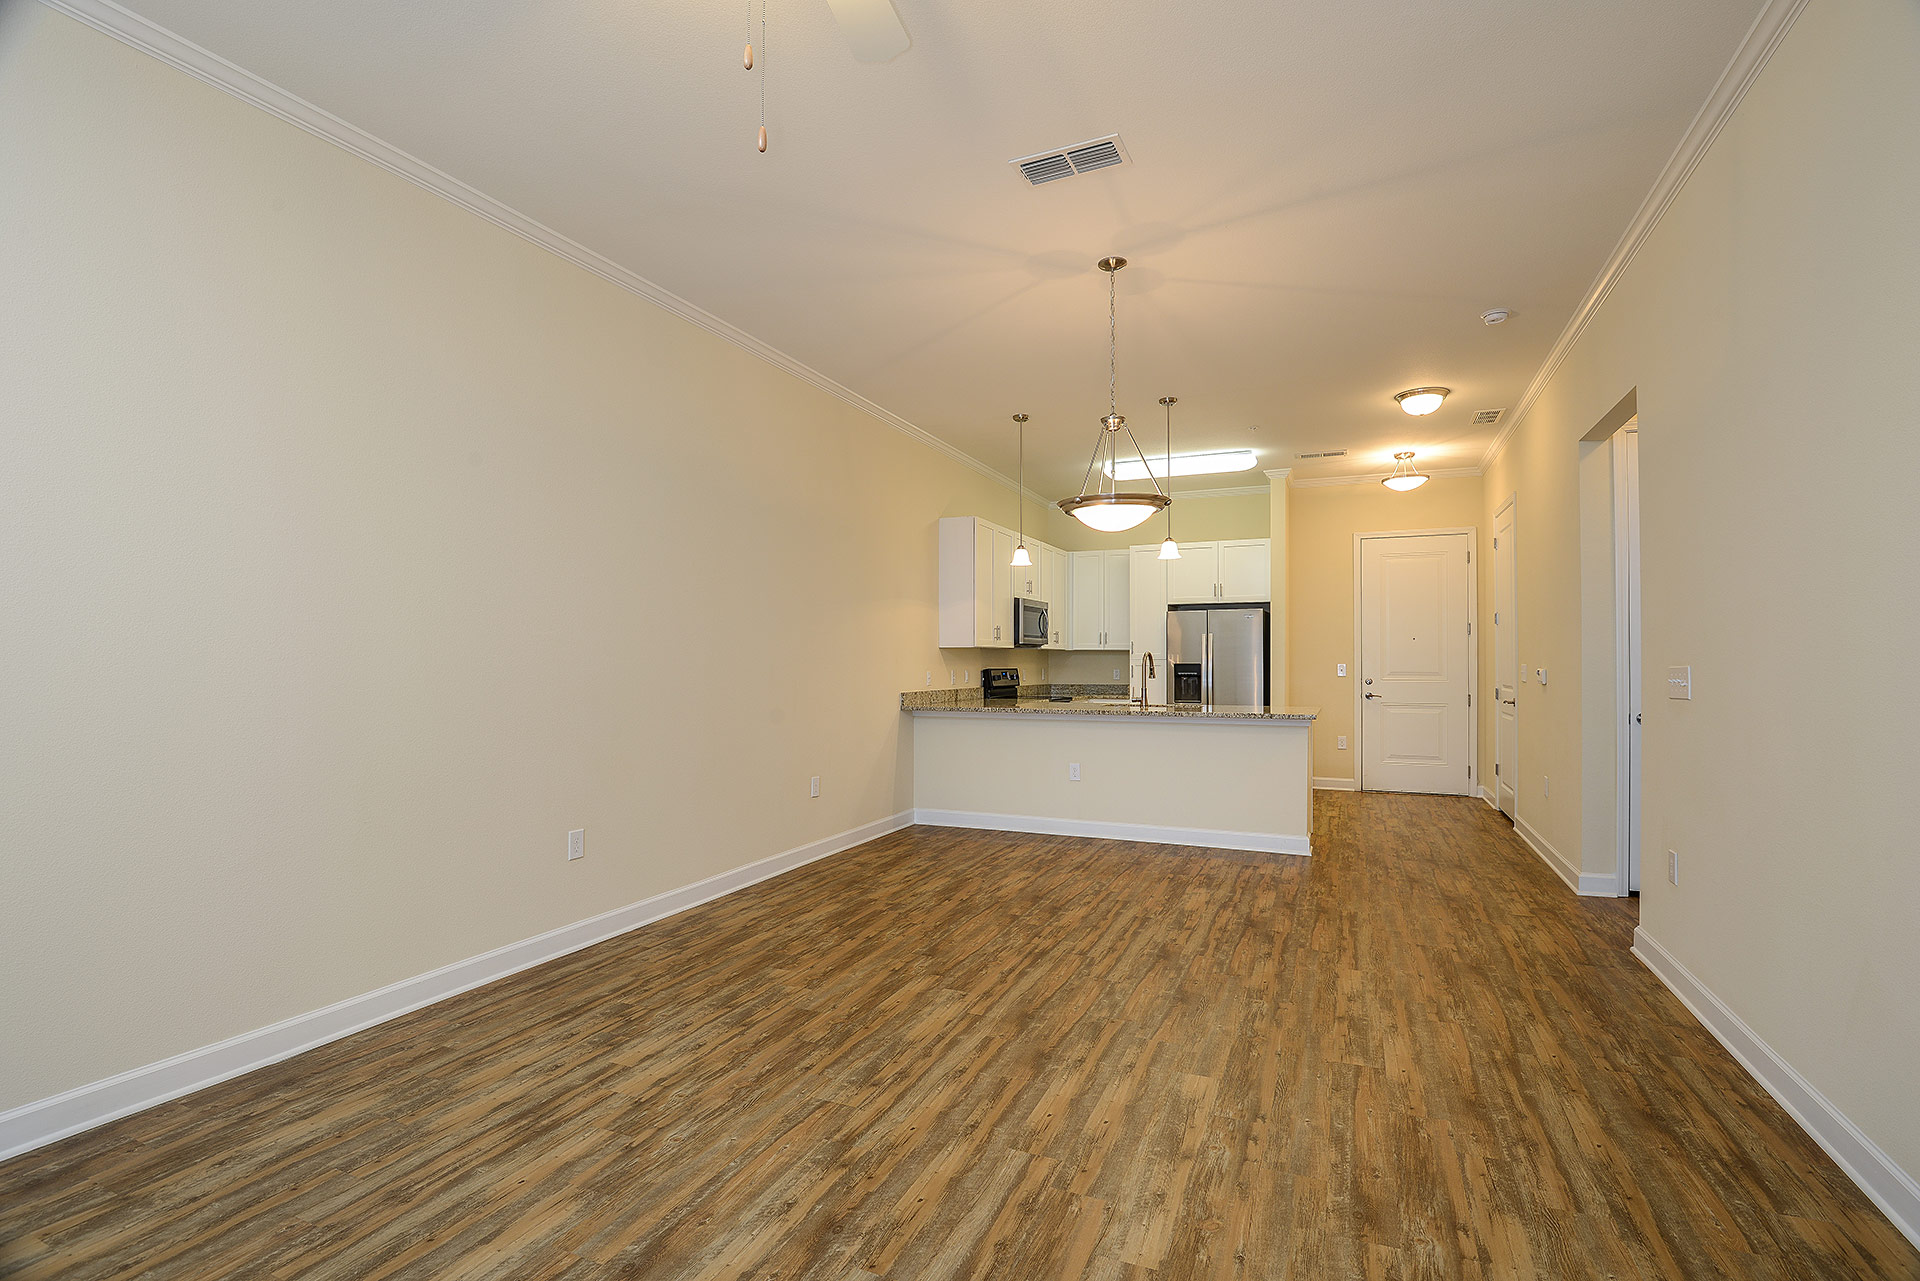 Wooden floor empty unit with kitchen